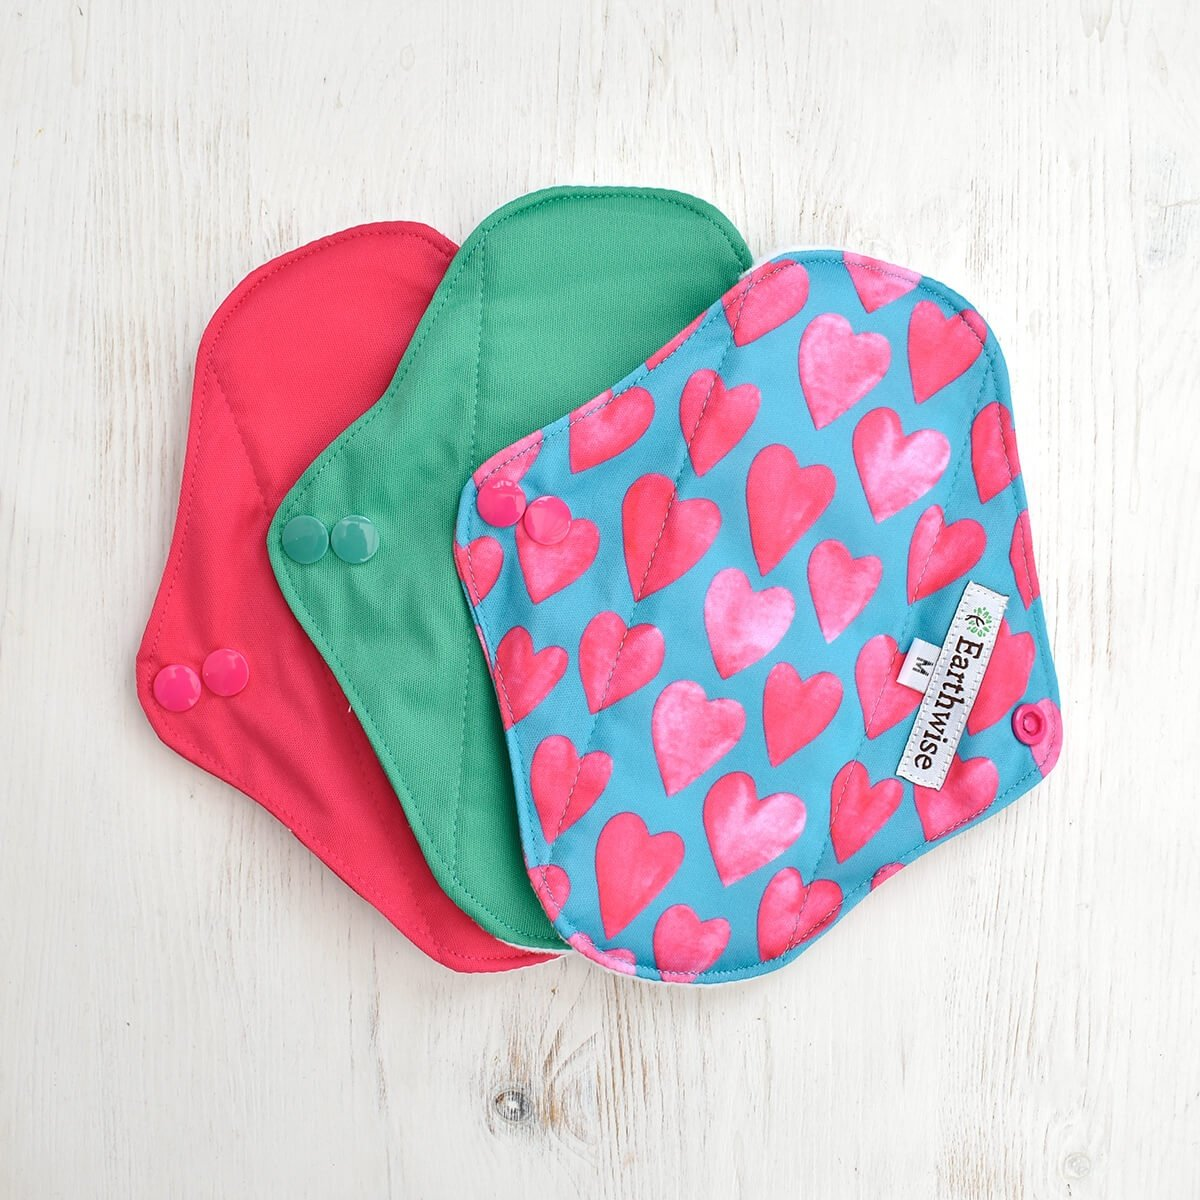 Earthwise Girls reusable sanitary pads